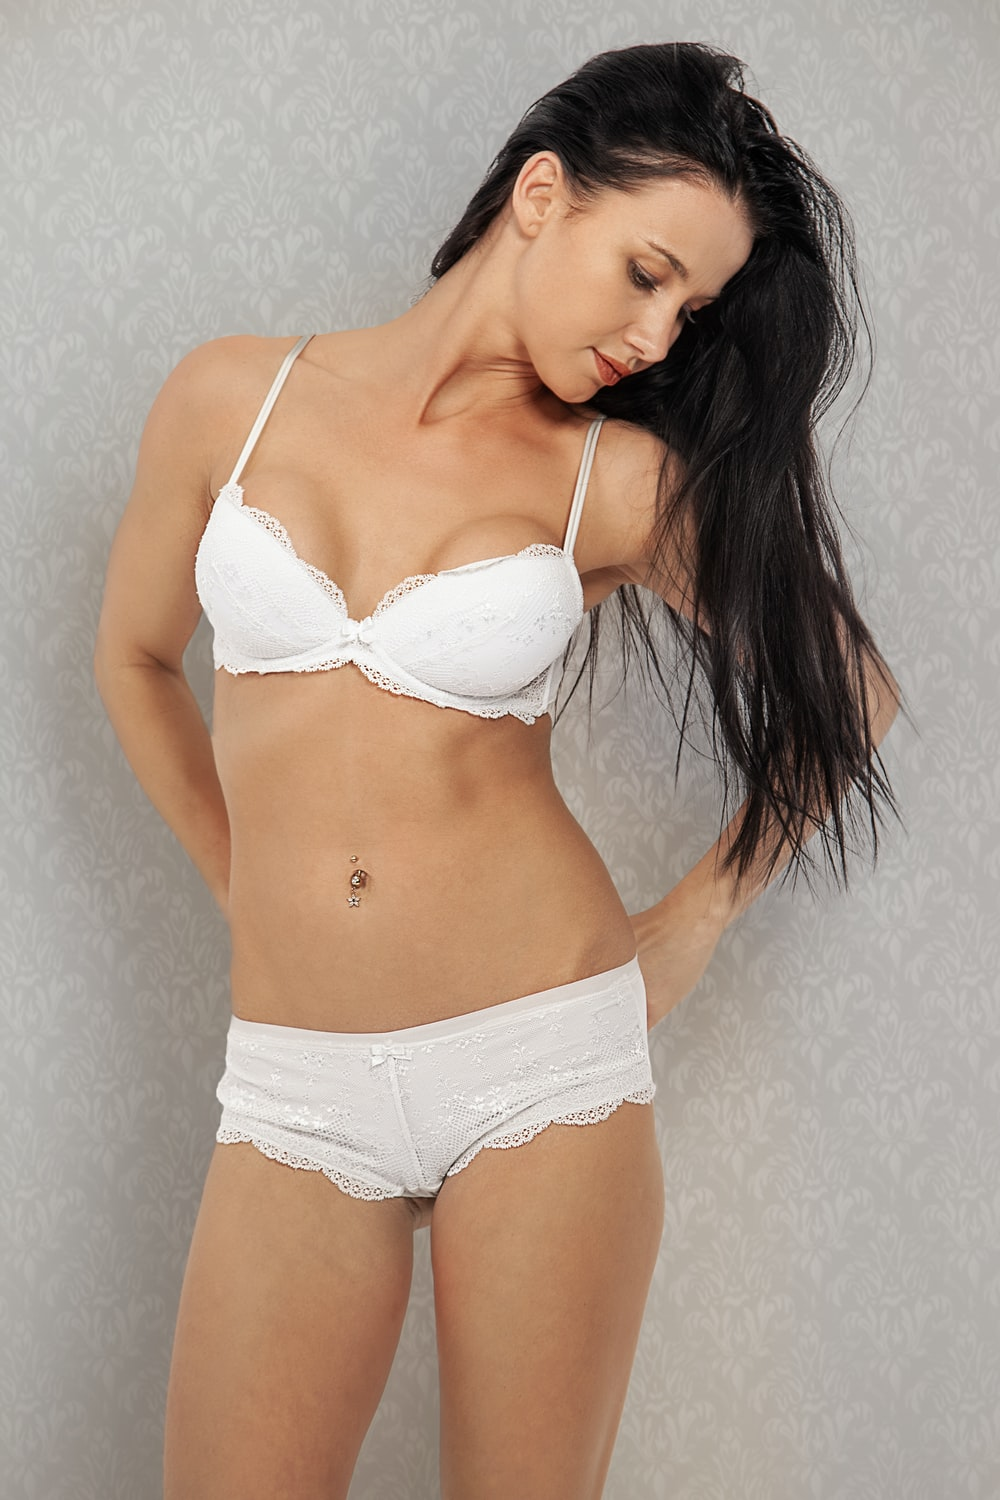 woman in white bra and panty